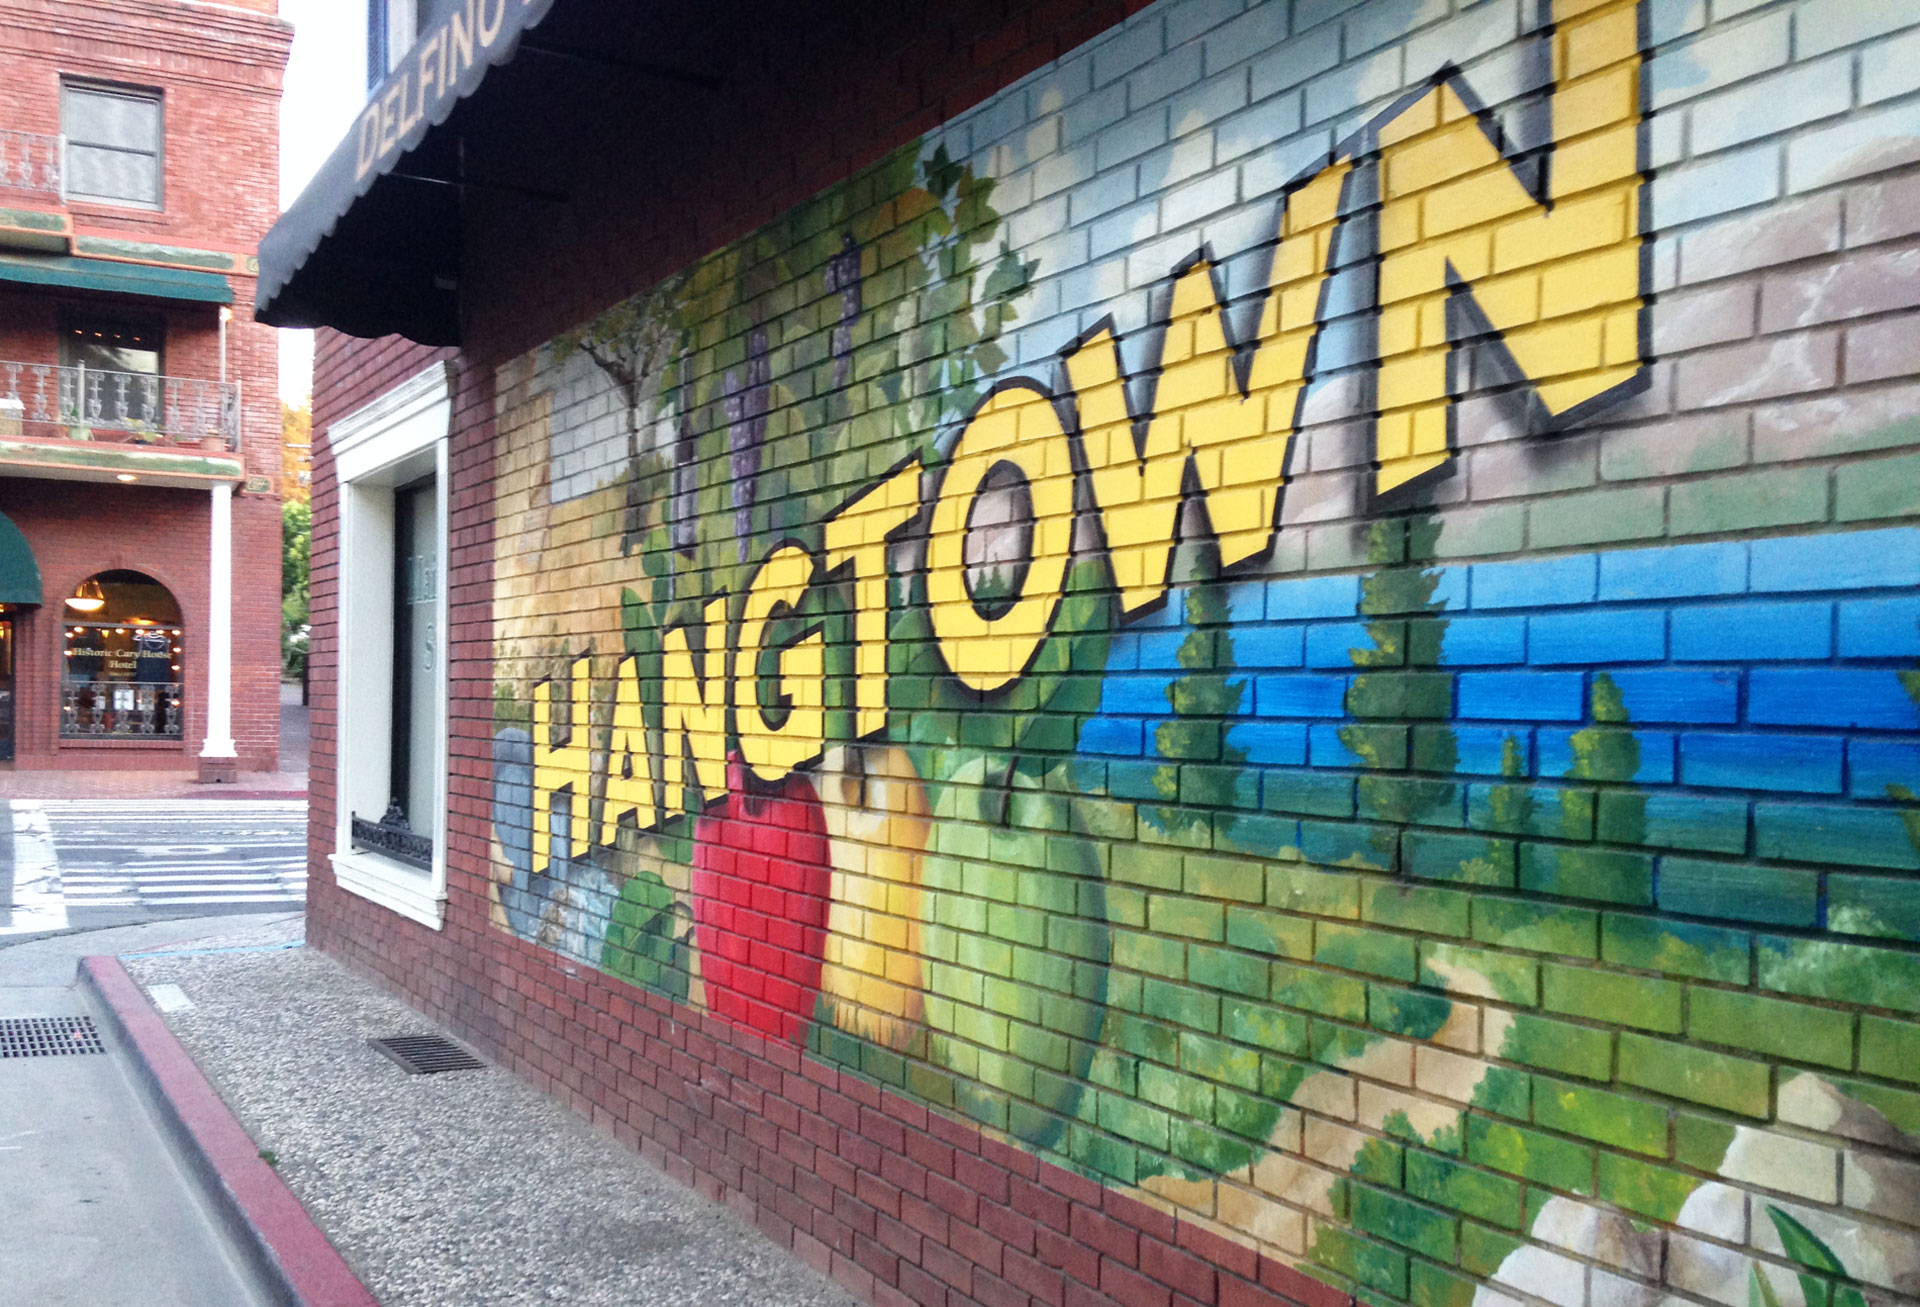 A painted wall in downtown Placerville, which was known as Old Hangtown.